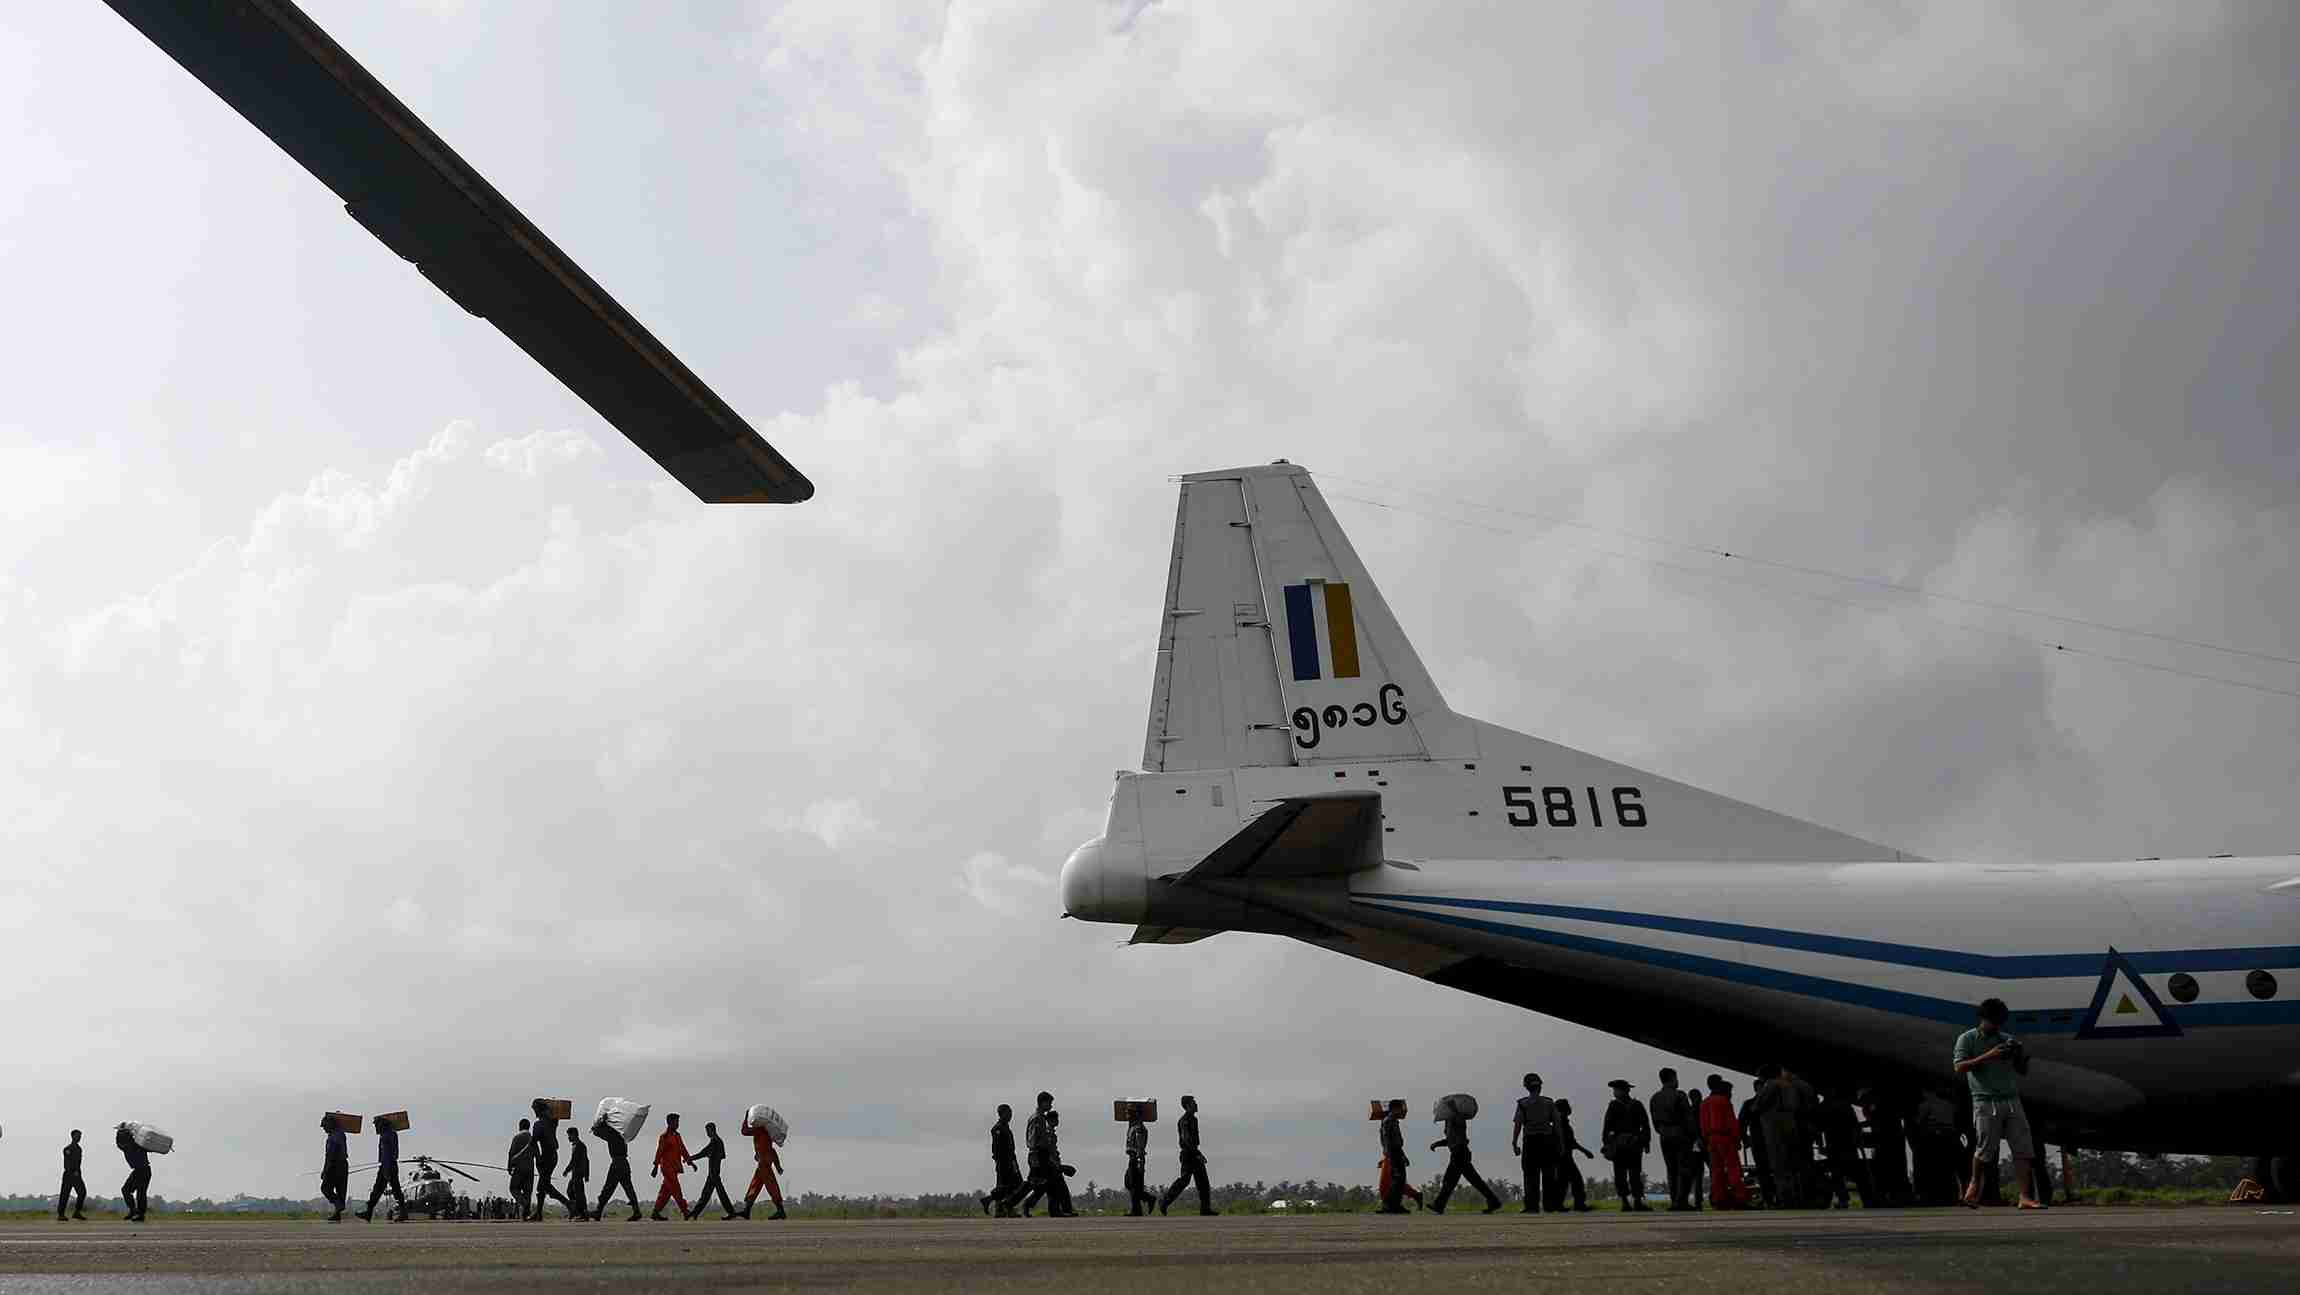 Soldiers and rescue workers unload aid from cargo aeroplane in Sittwe airpot at Sittwe, Rakhine state, August 5, 2015. The United States will announce an aid package for Myanmar to help the Southeast Asian country provide relief for the hundreds of thousands of people affected by floods, Secretary of State John Kerry said on Wednesday. More than 250,000 people have been affected and 69 killed by flooding that was triggered last week by monsoon rains, according to the Ministry of Social Welfare, Relief and Resettlement. REUTERS/Soe Zeya Tun - GF20000014051